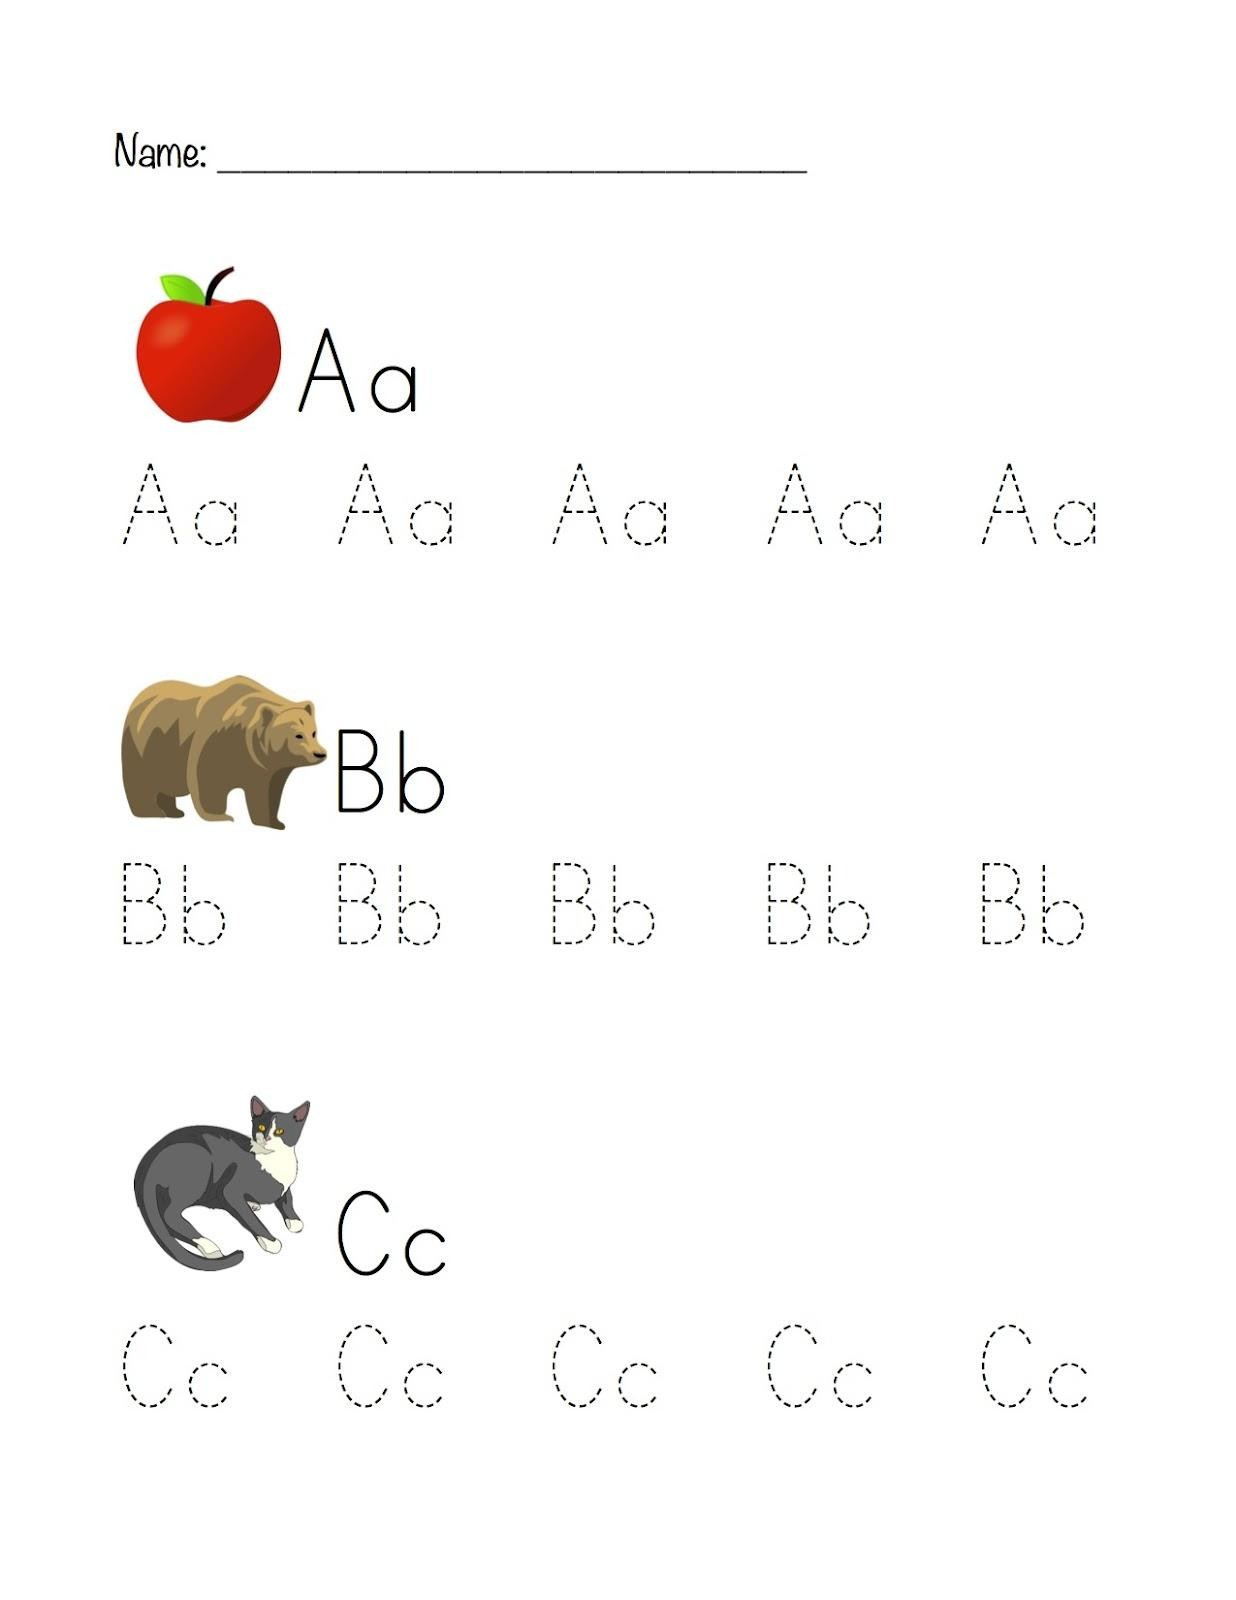 Abc Tracing Worksheets For Kindergarten 5 Letter Worksheets